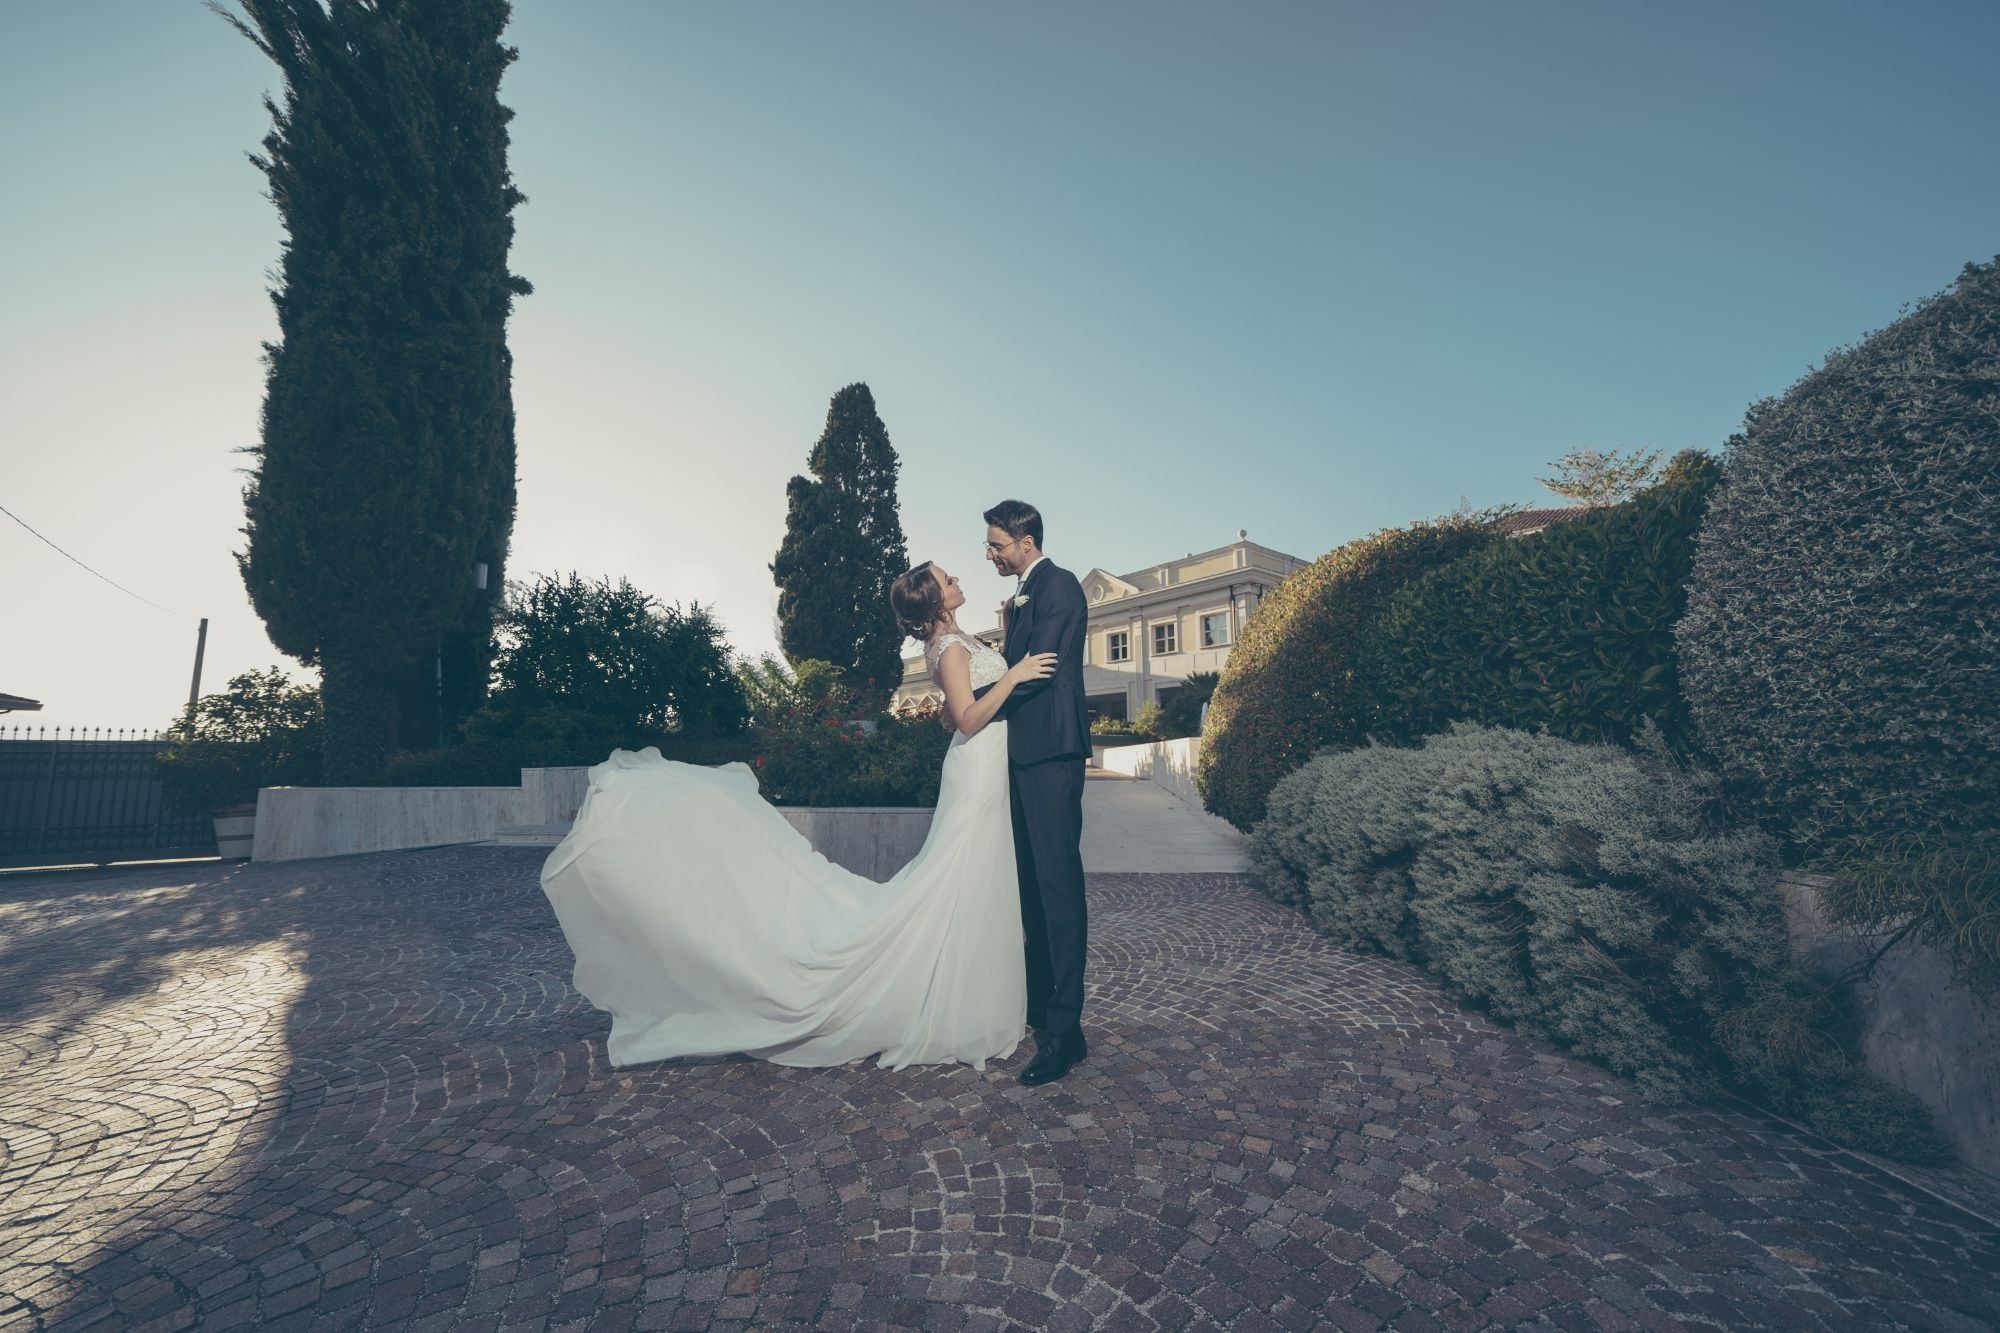 LUXURY WEDDING IN VILLA ORSINI, MIRABELLA ECLANO , ITALY